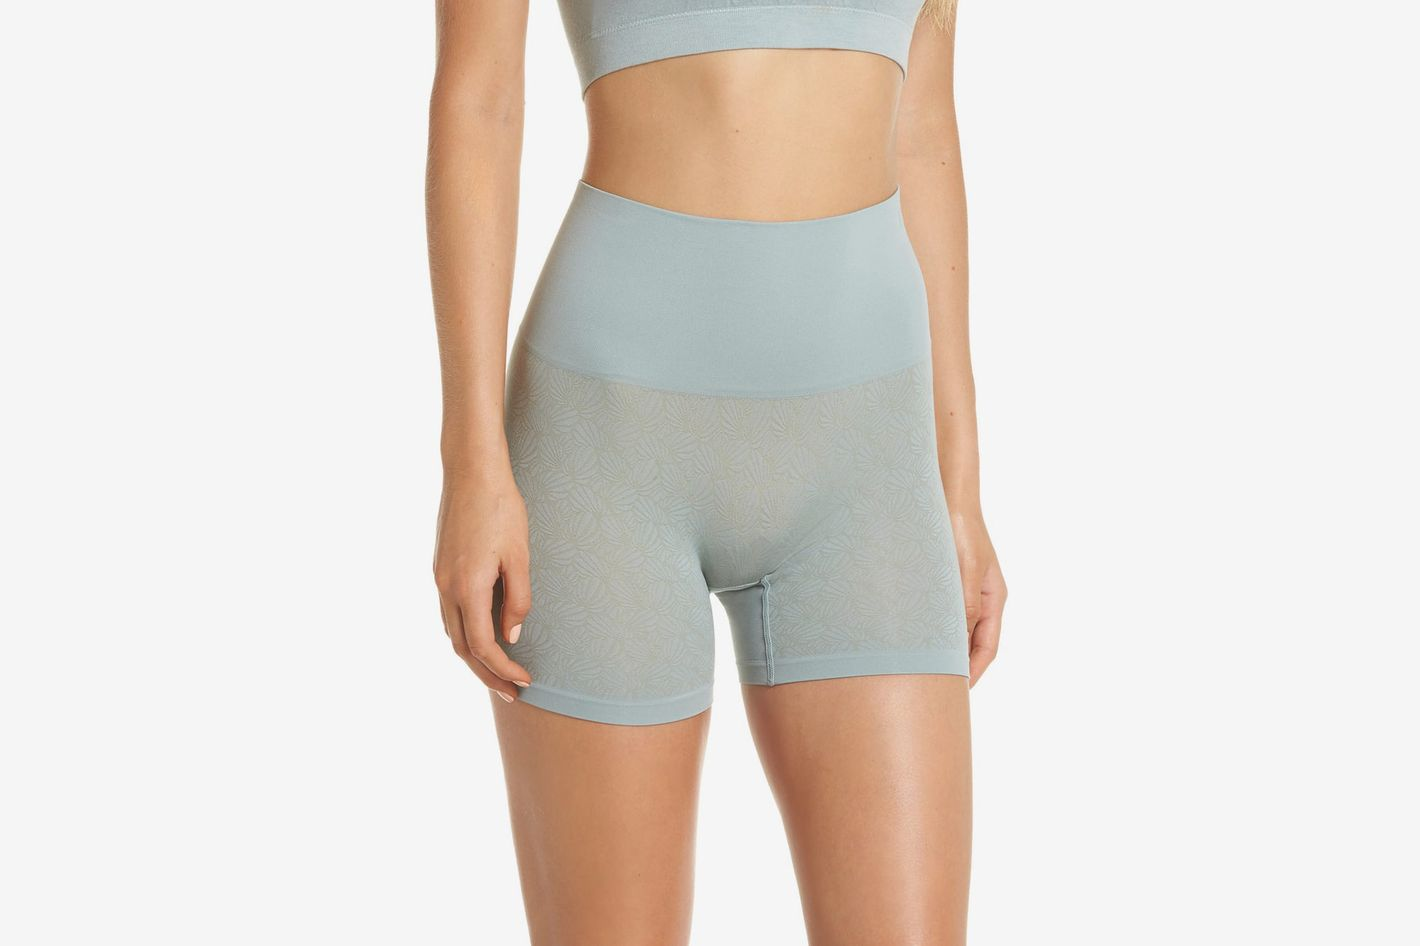 Yummie Ultralight Seamless Shaping Shorts